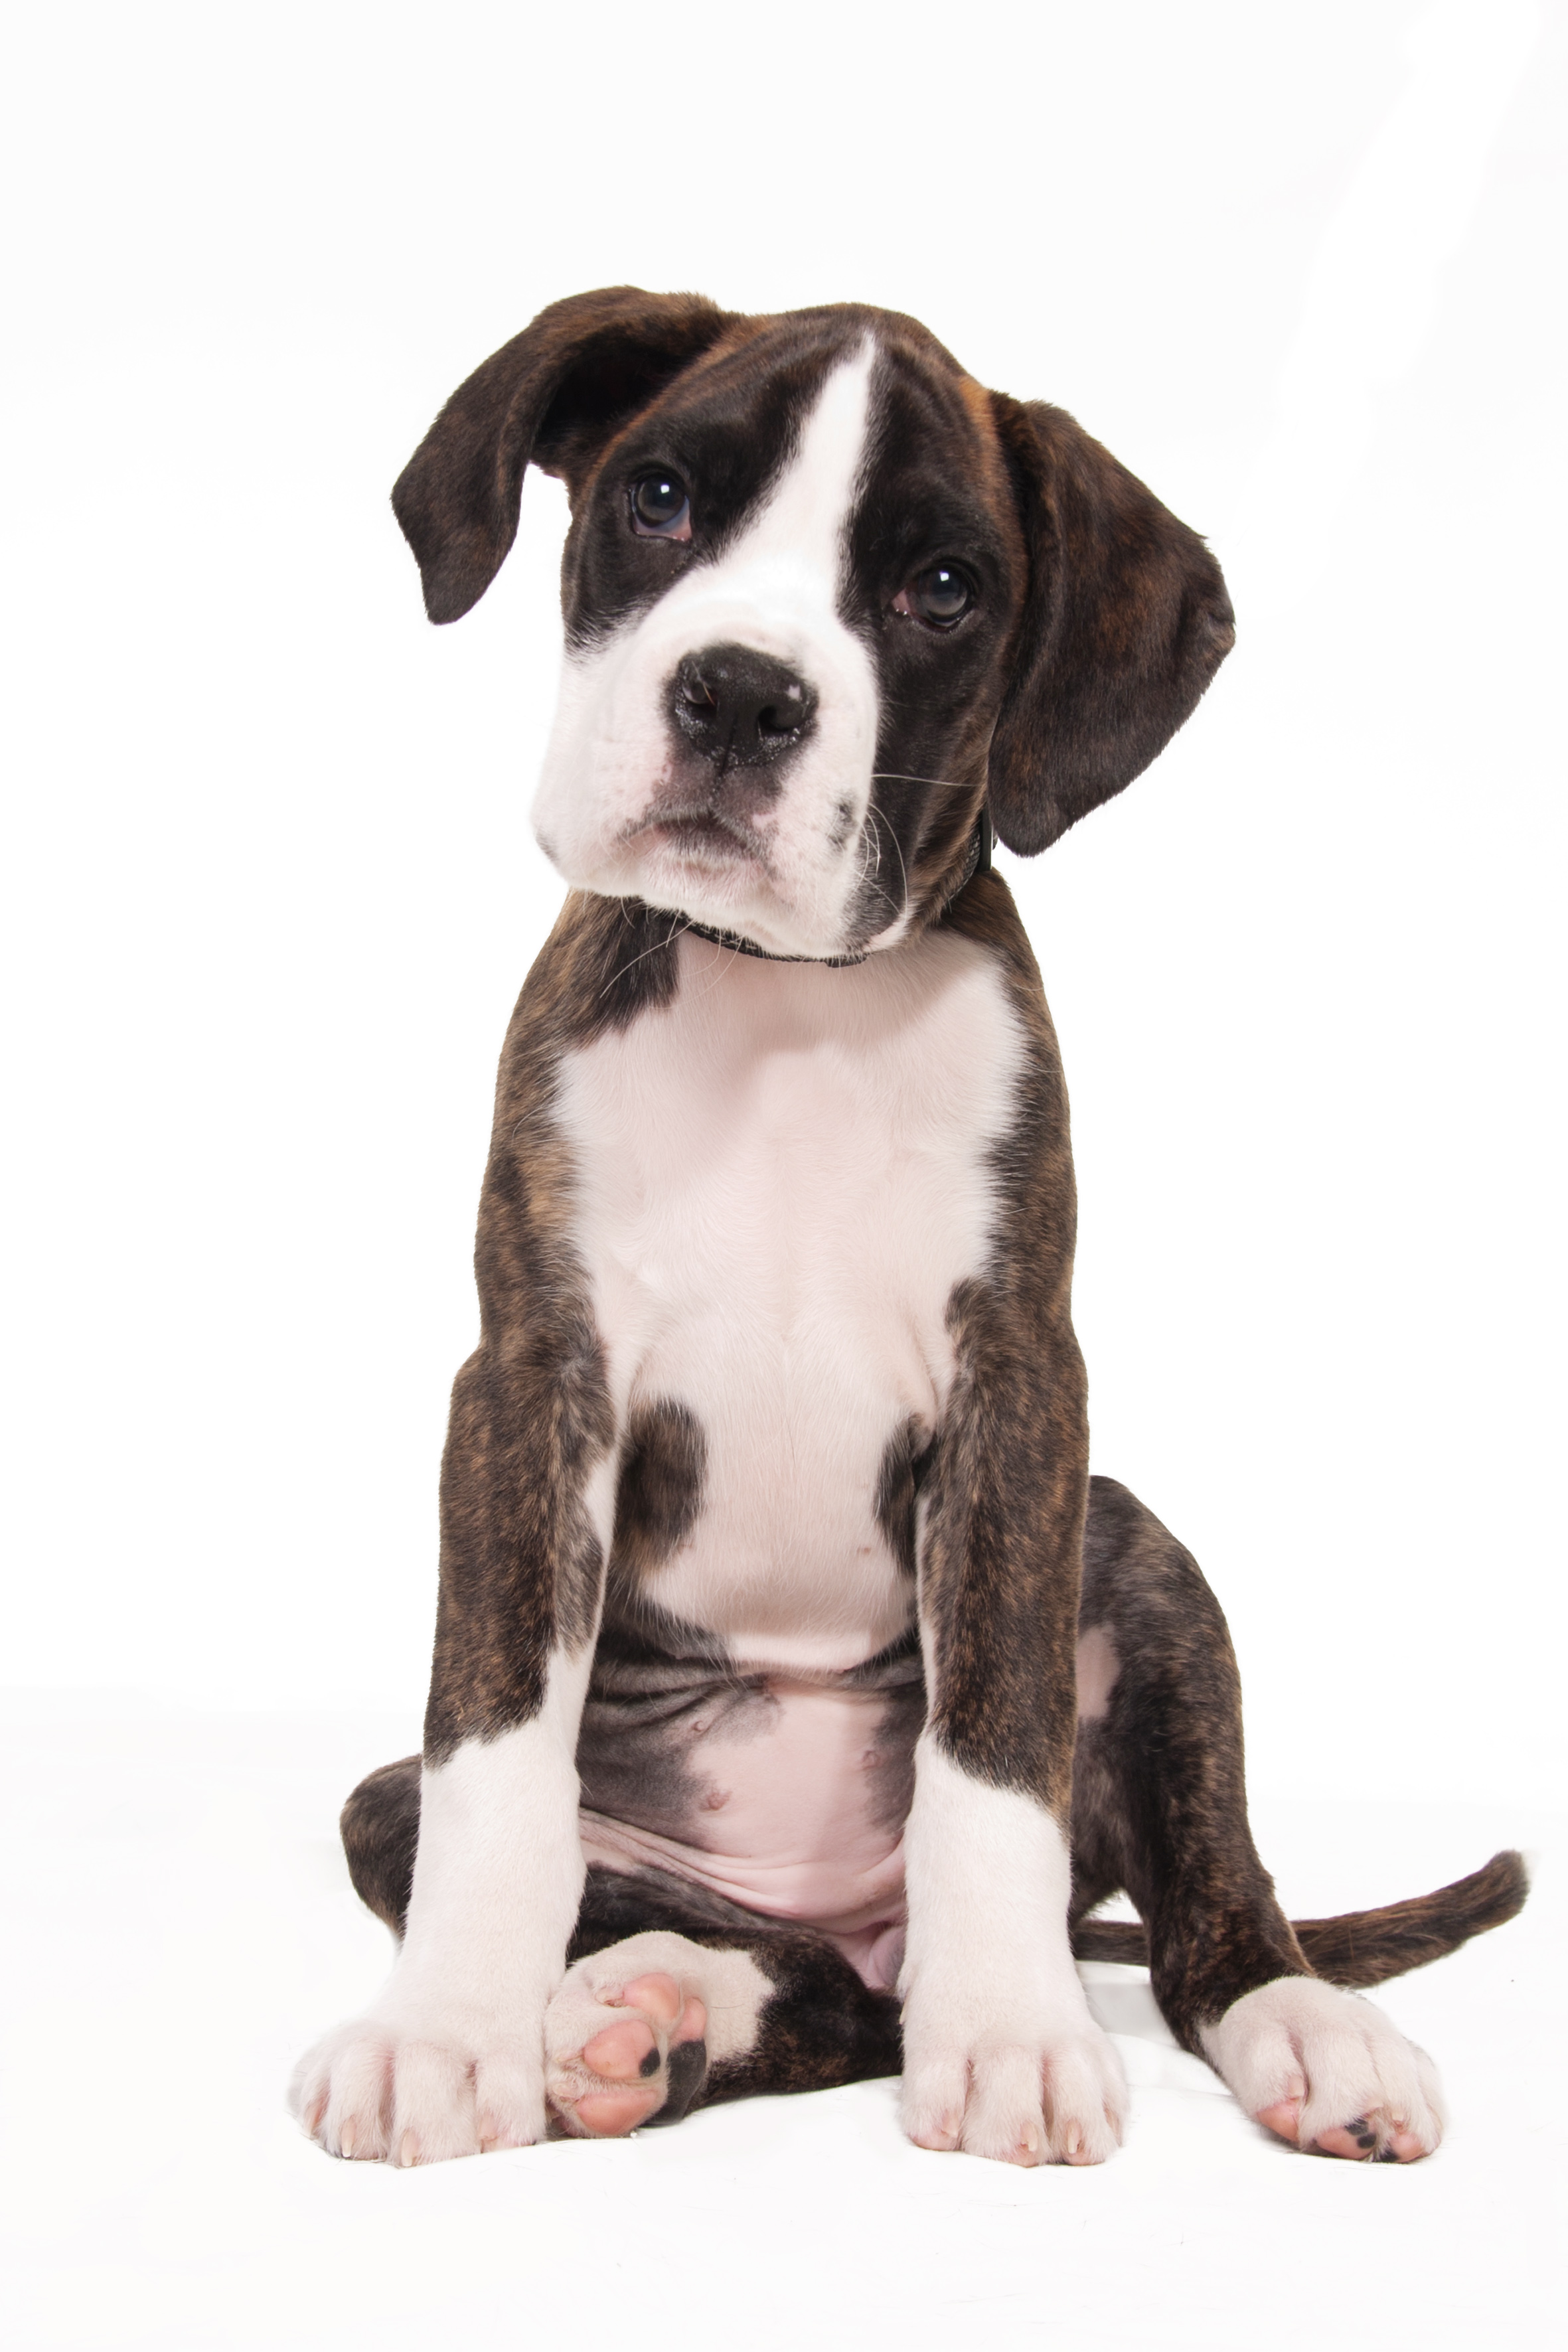 free photo: cute boxer puppy - puppies, photography, pup - free